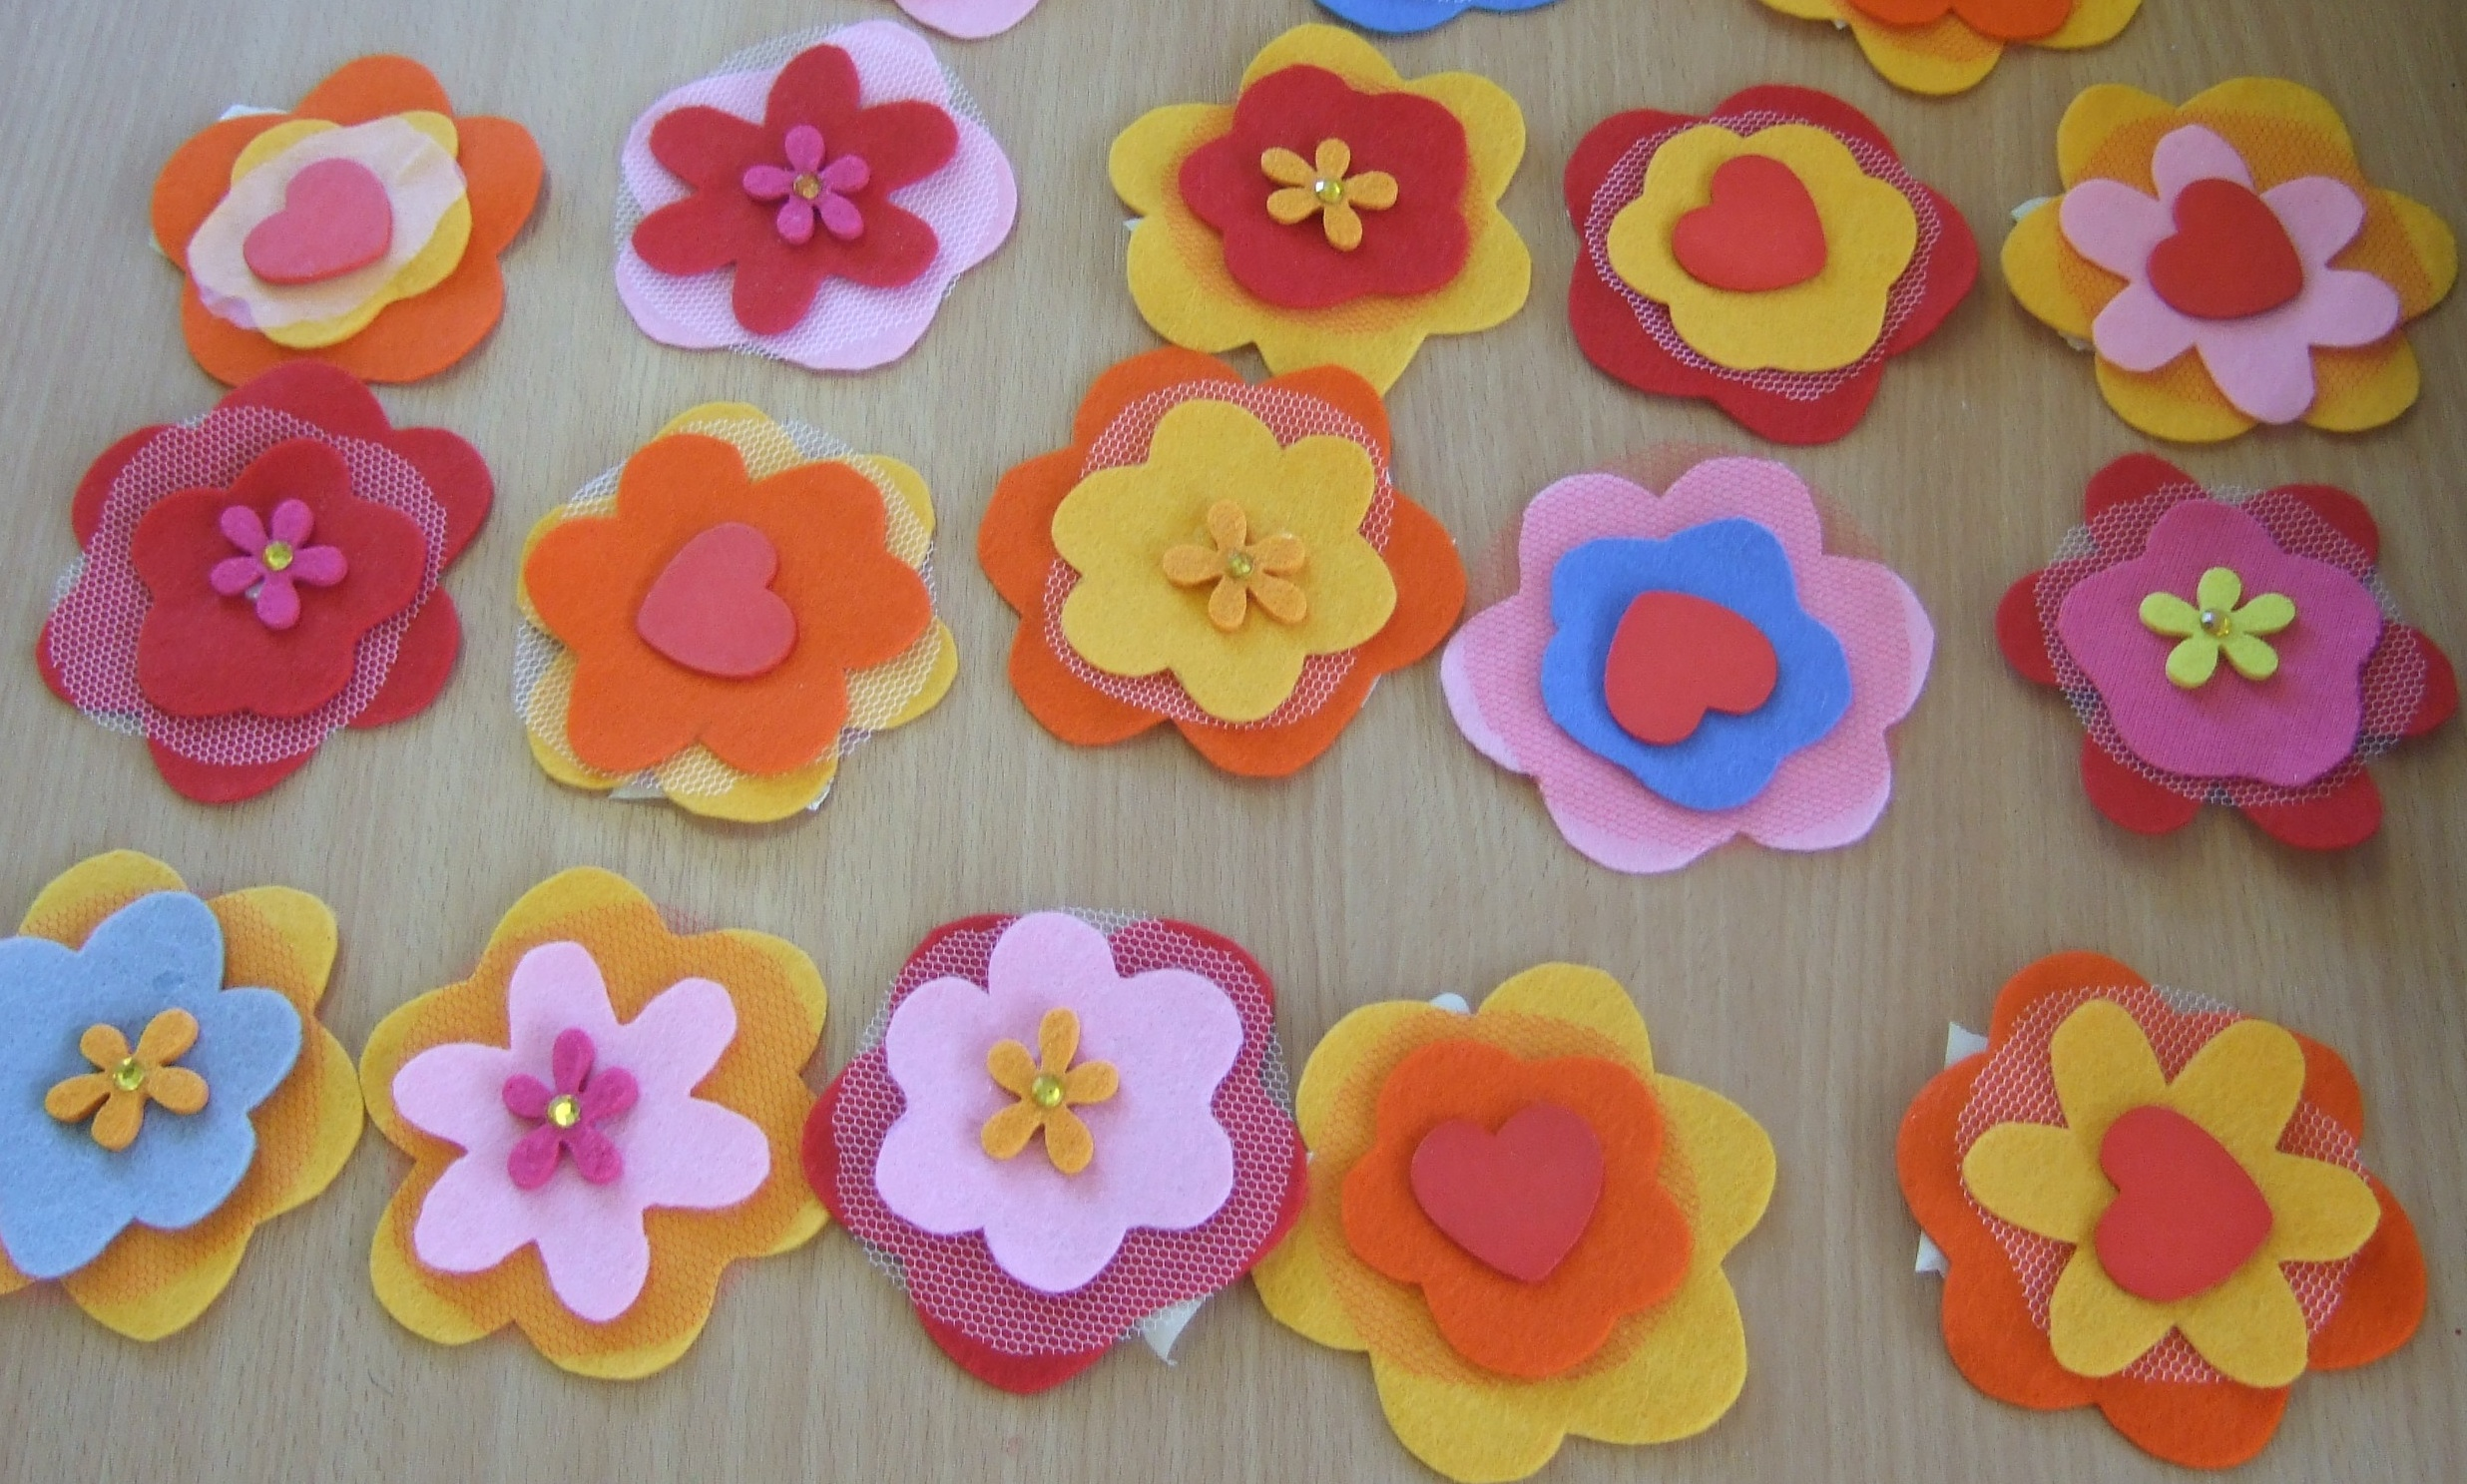 Crafting with kids: felt flower brooches